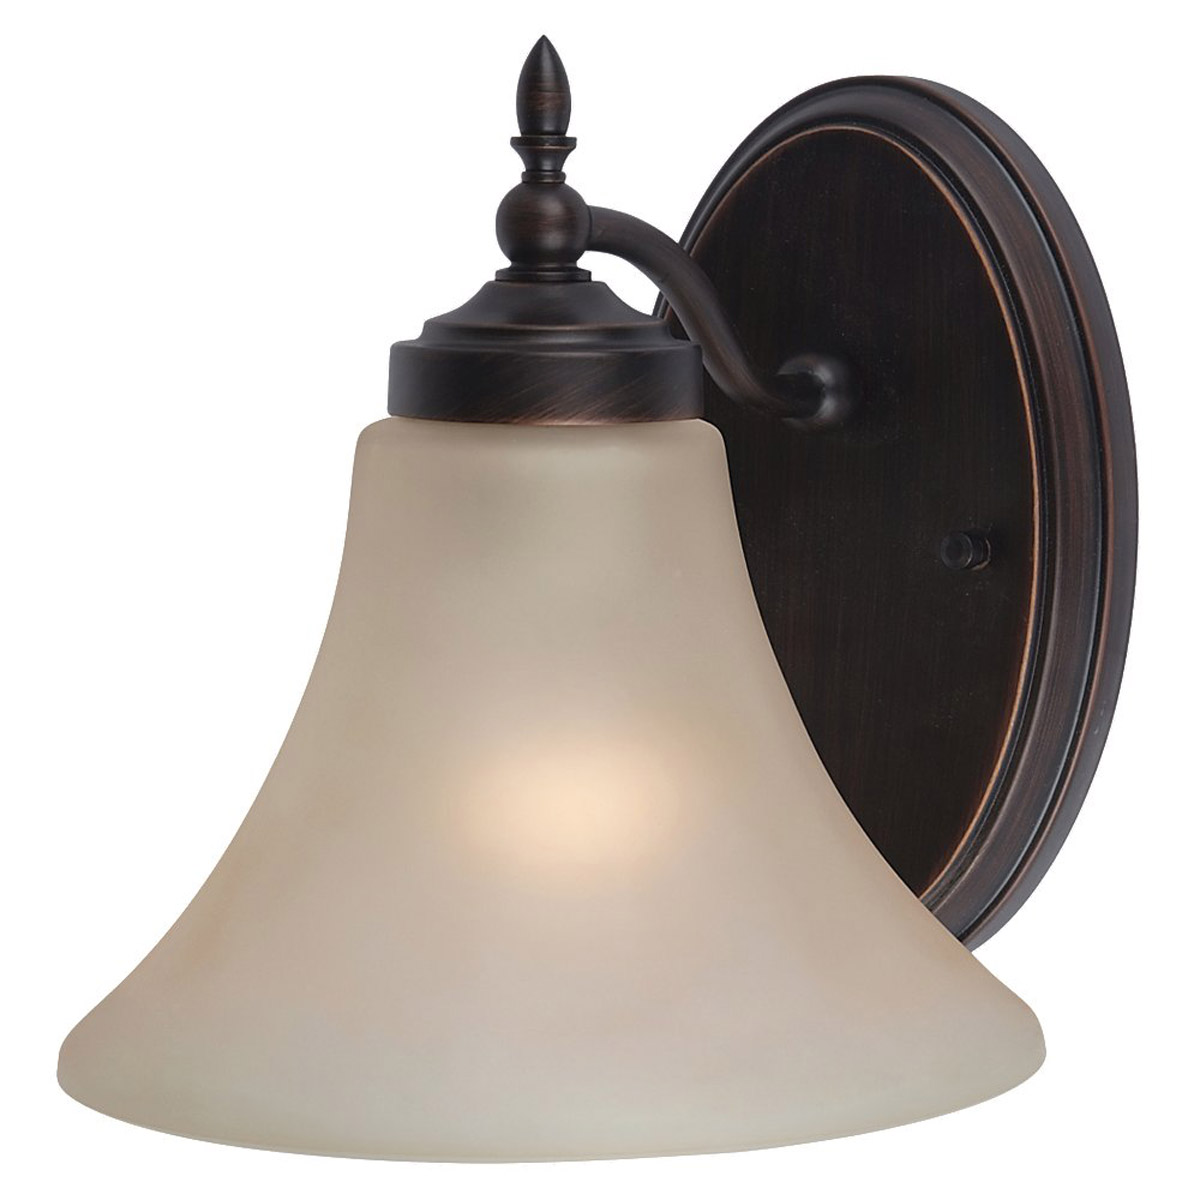 Sea Gull 41180-710 Montreal 1 Light 8 inch Burnt Sienna Bath Vanity Wall Light in Cafe Tint Glass, Standard photo